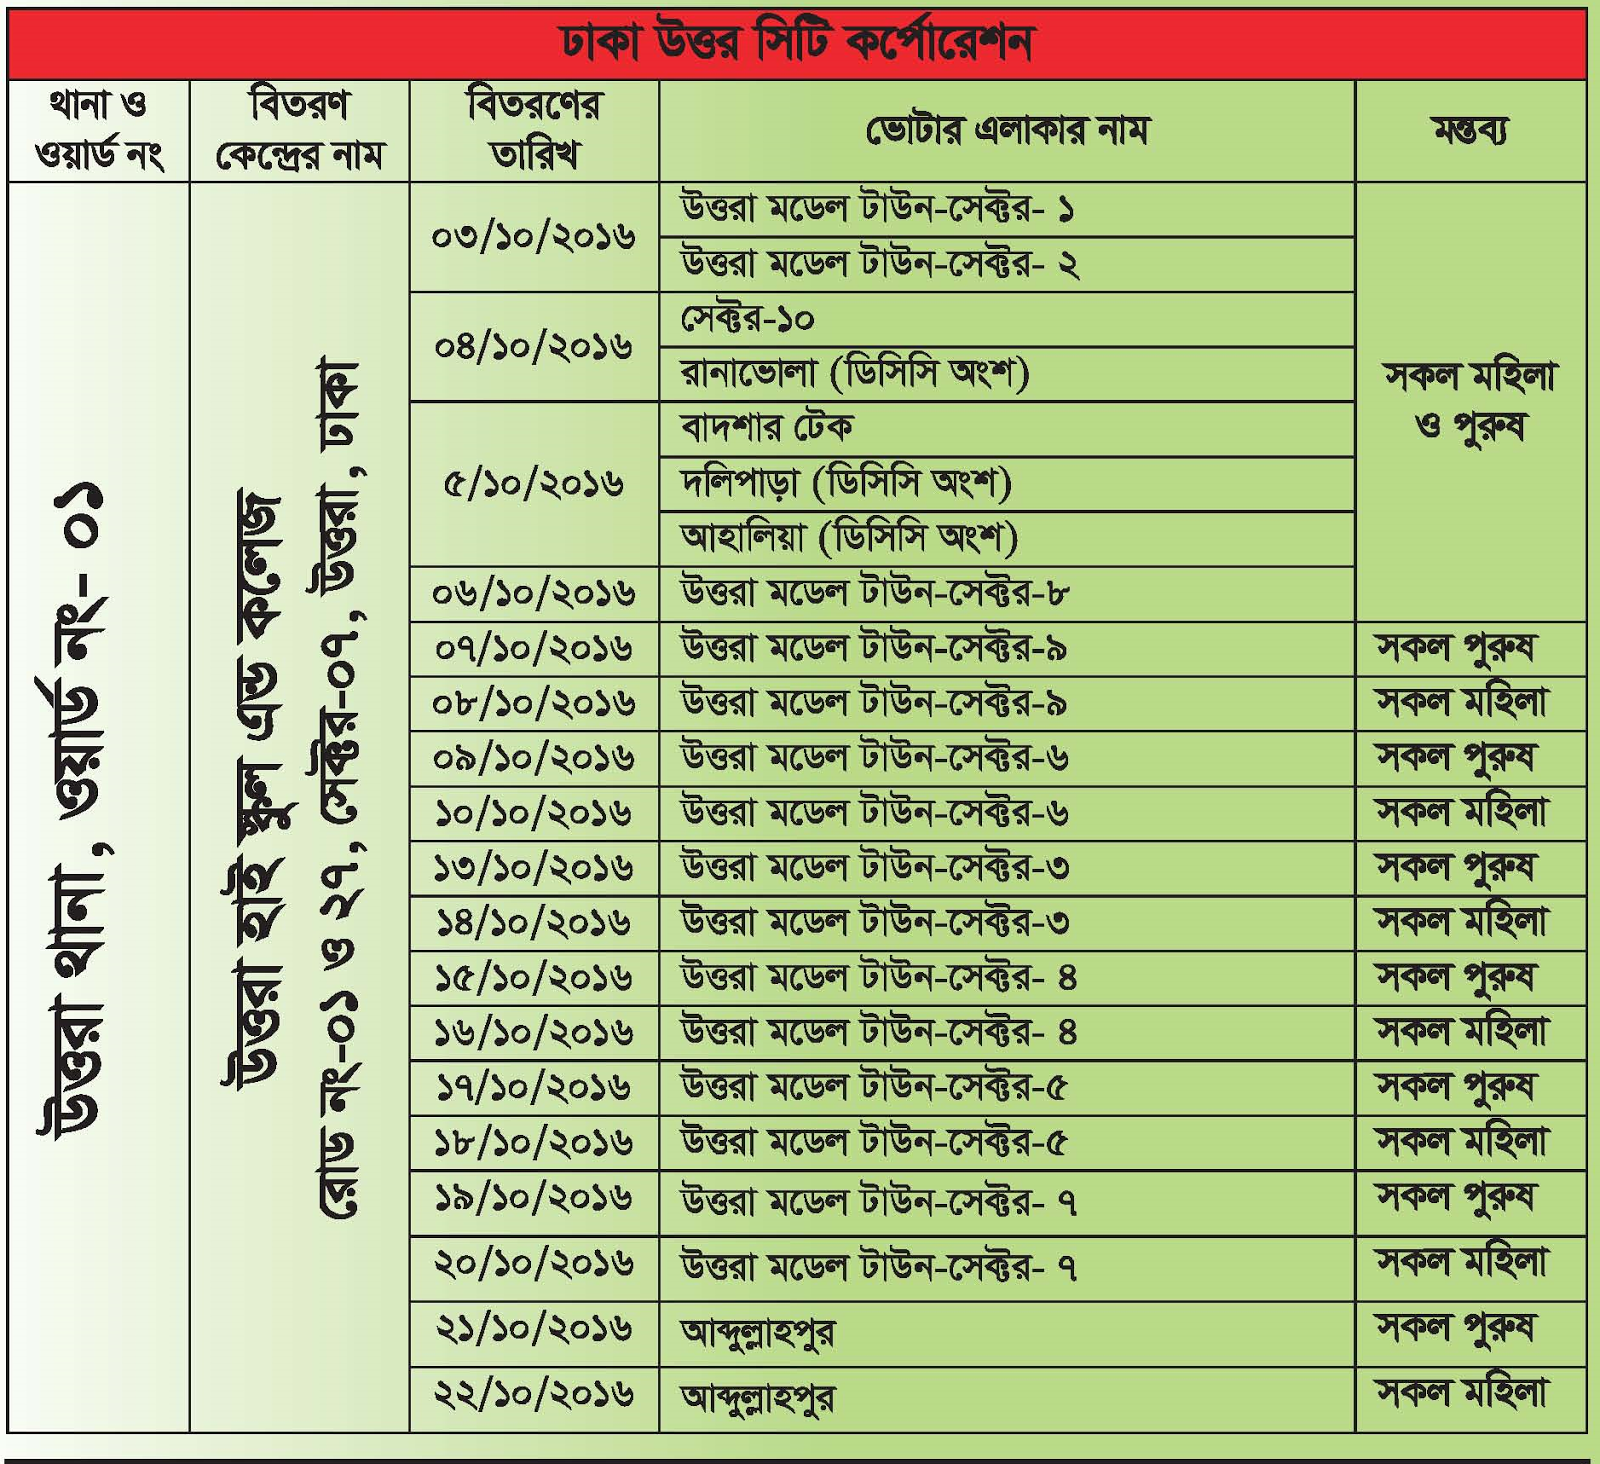 Dhaka-North-City-Corporation-Smart-NID-How-To-Collect-Distribution-Schedules-Informations-Bangladesh.png